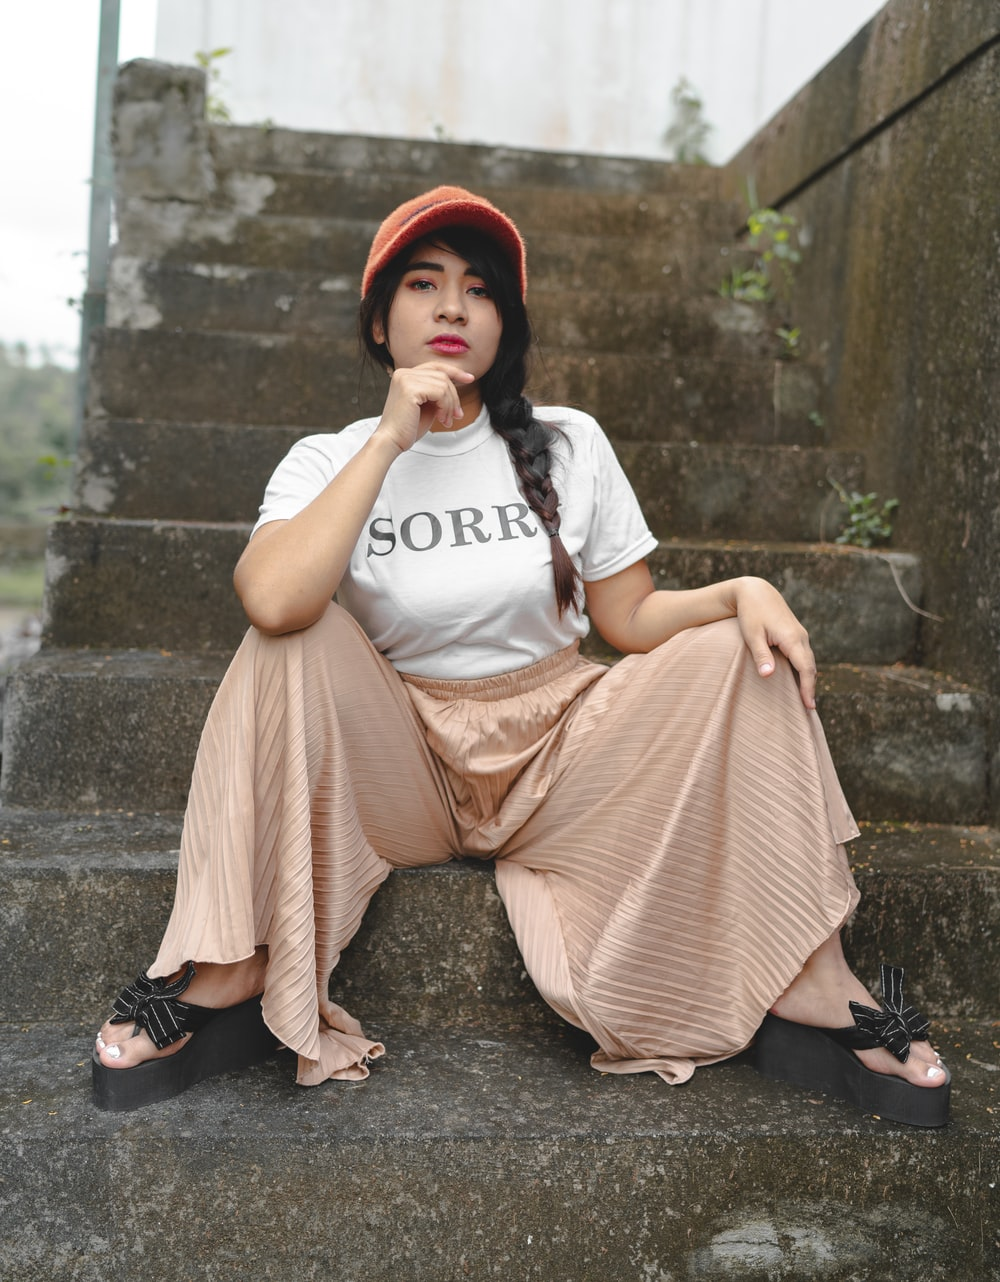 woman in white t-shirt and pink skirt sitting on concrete stairs